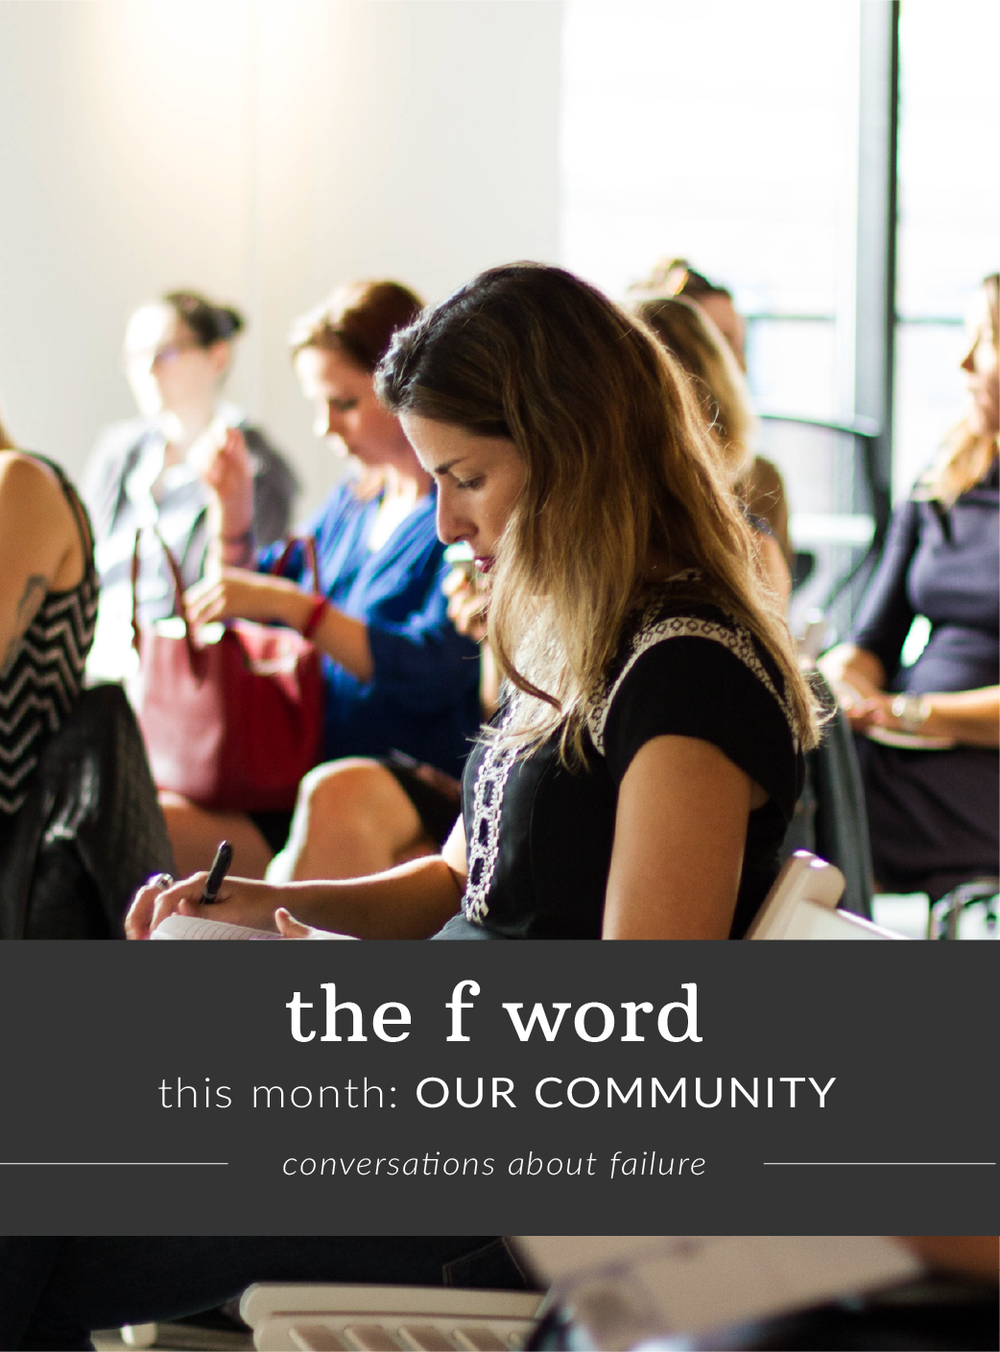 Final thoughts in the f-word interview series from our community